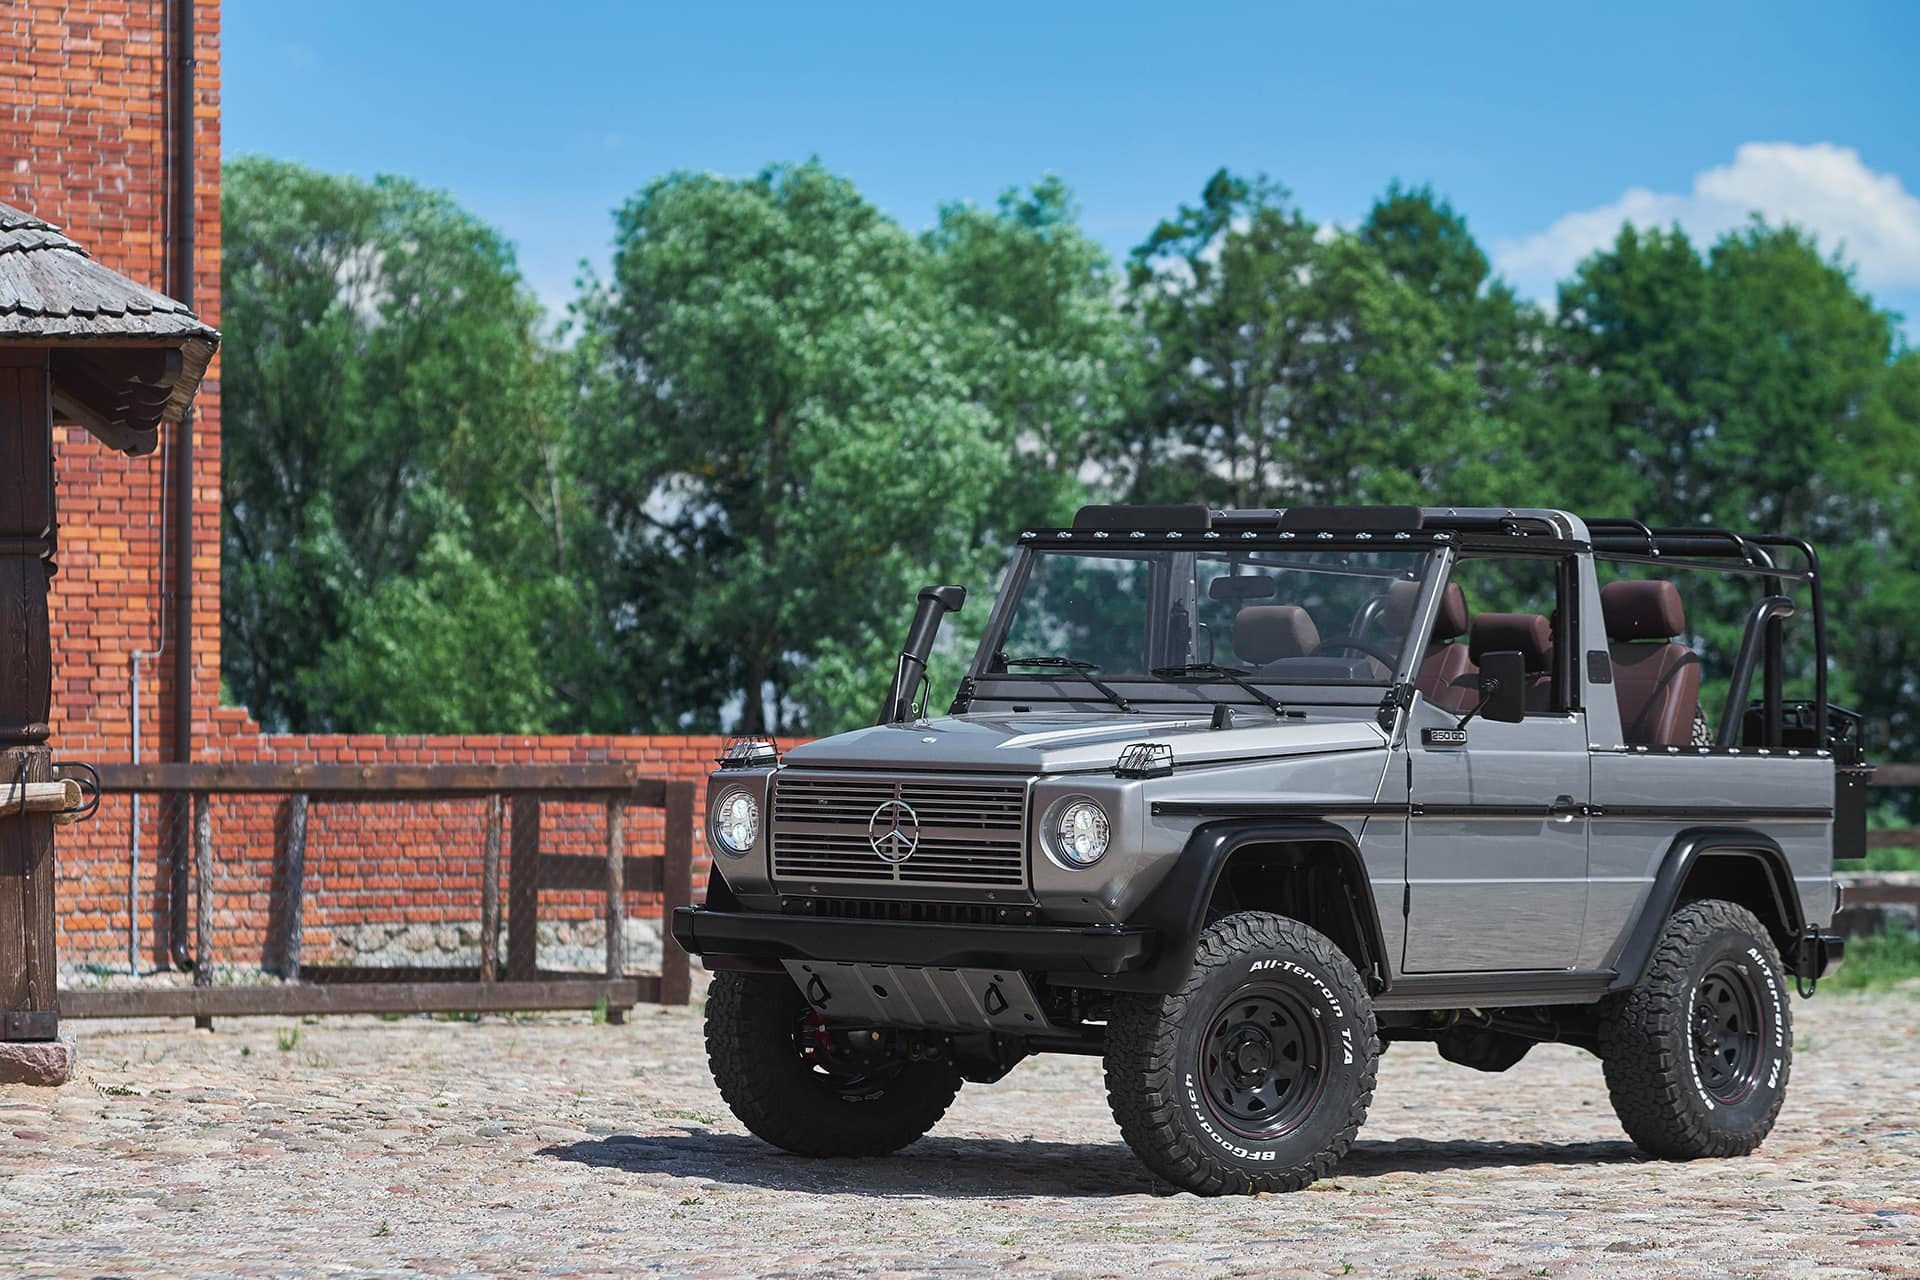 Expedition Motor Company Is Breathing New Life Into Mercedes-Benz 'Wolf' G-Wagens